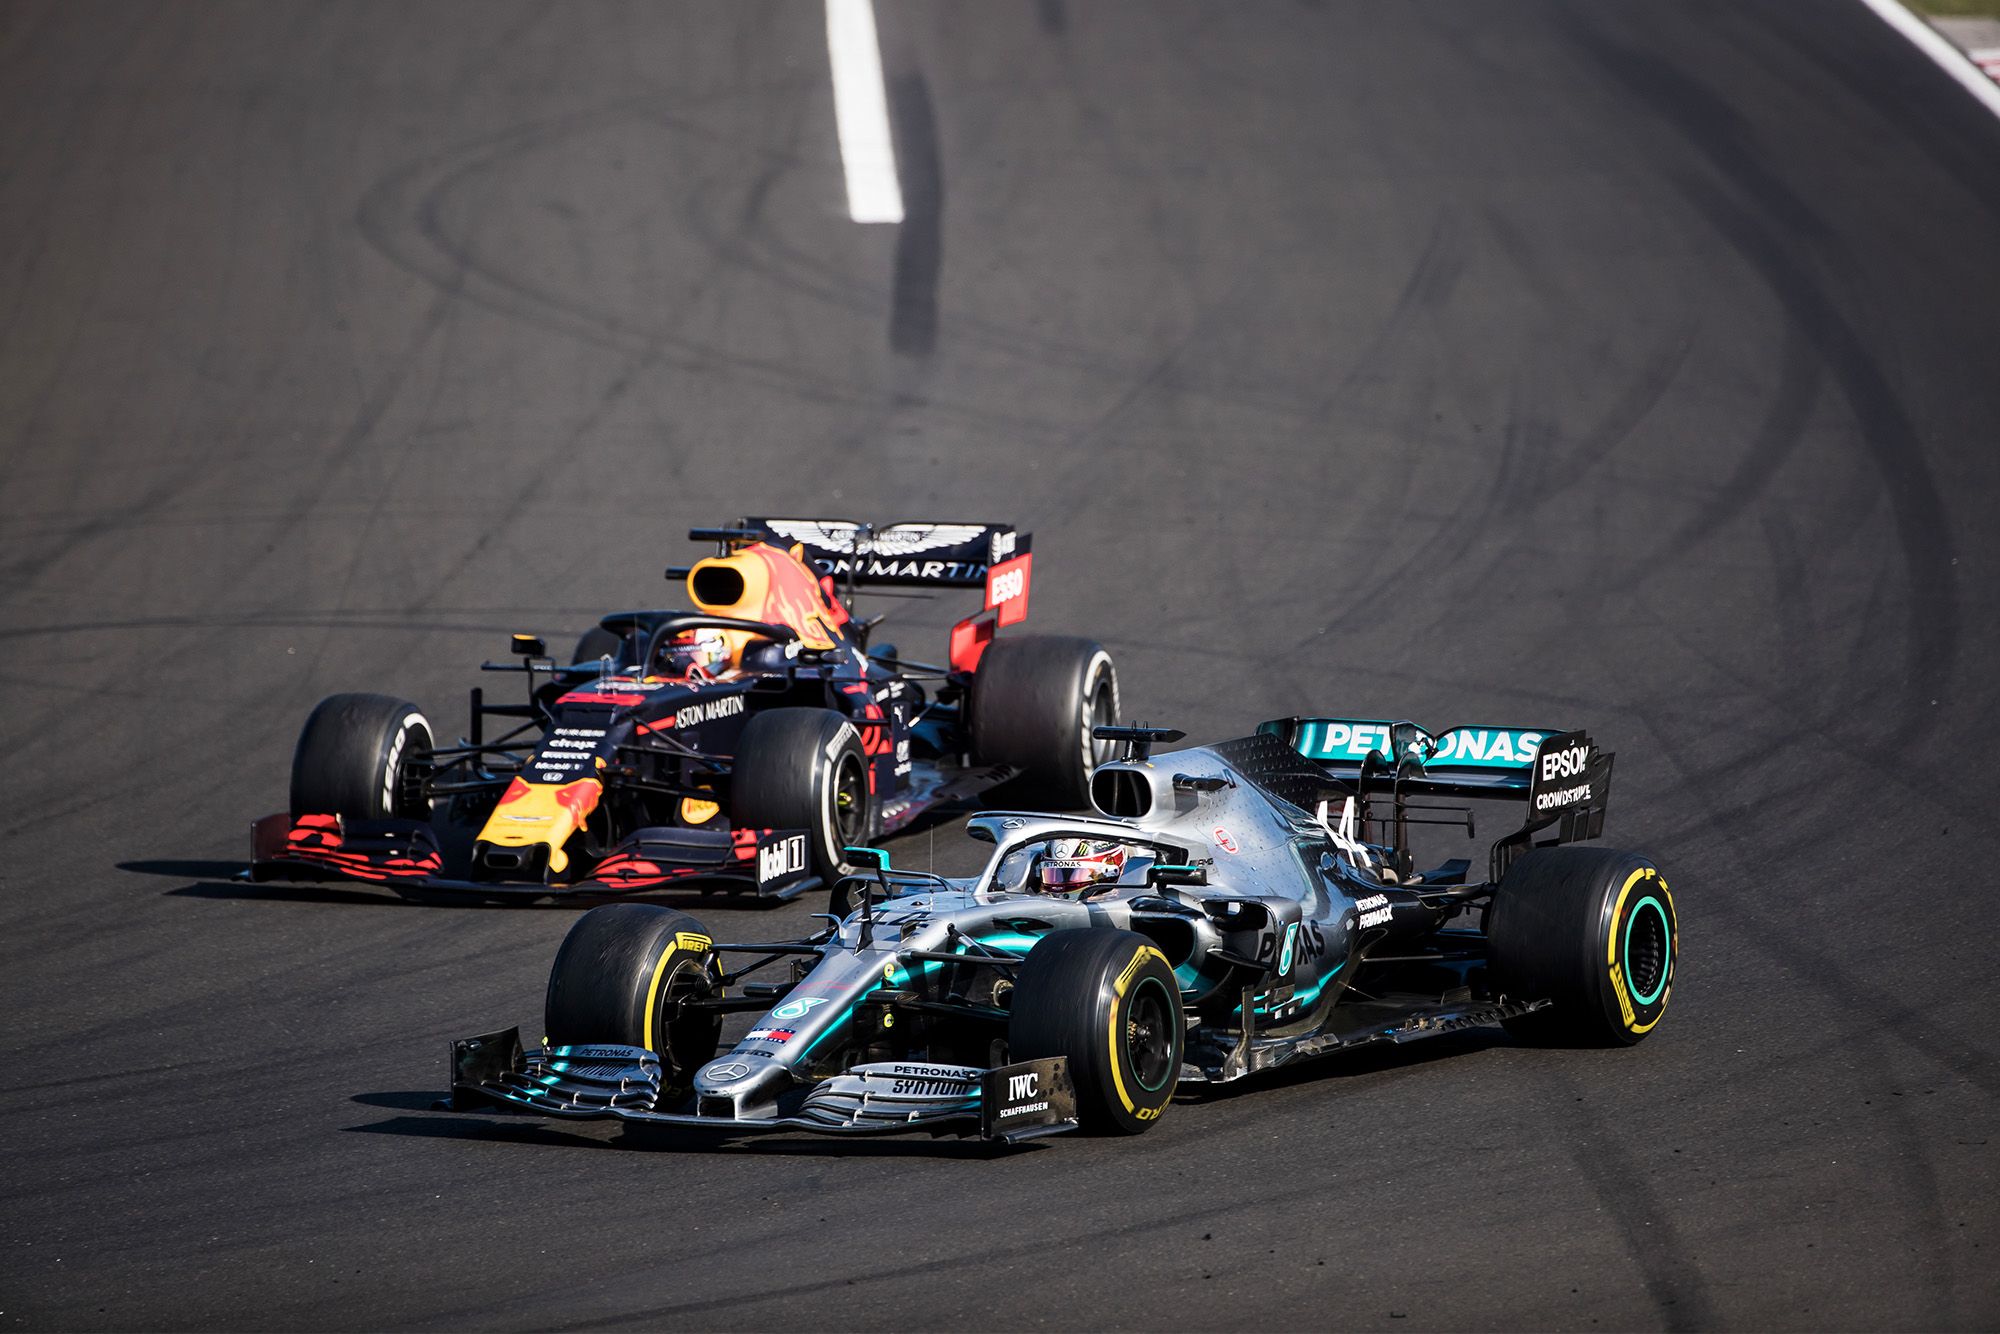 Lewis Hamilton overtakes Max Verstappen for the lead of the Hungarian Grand Prix